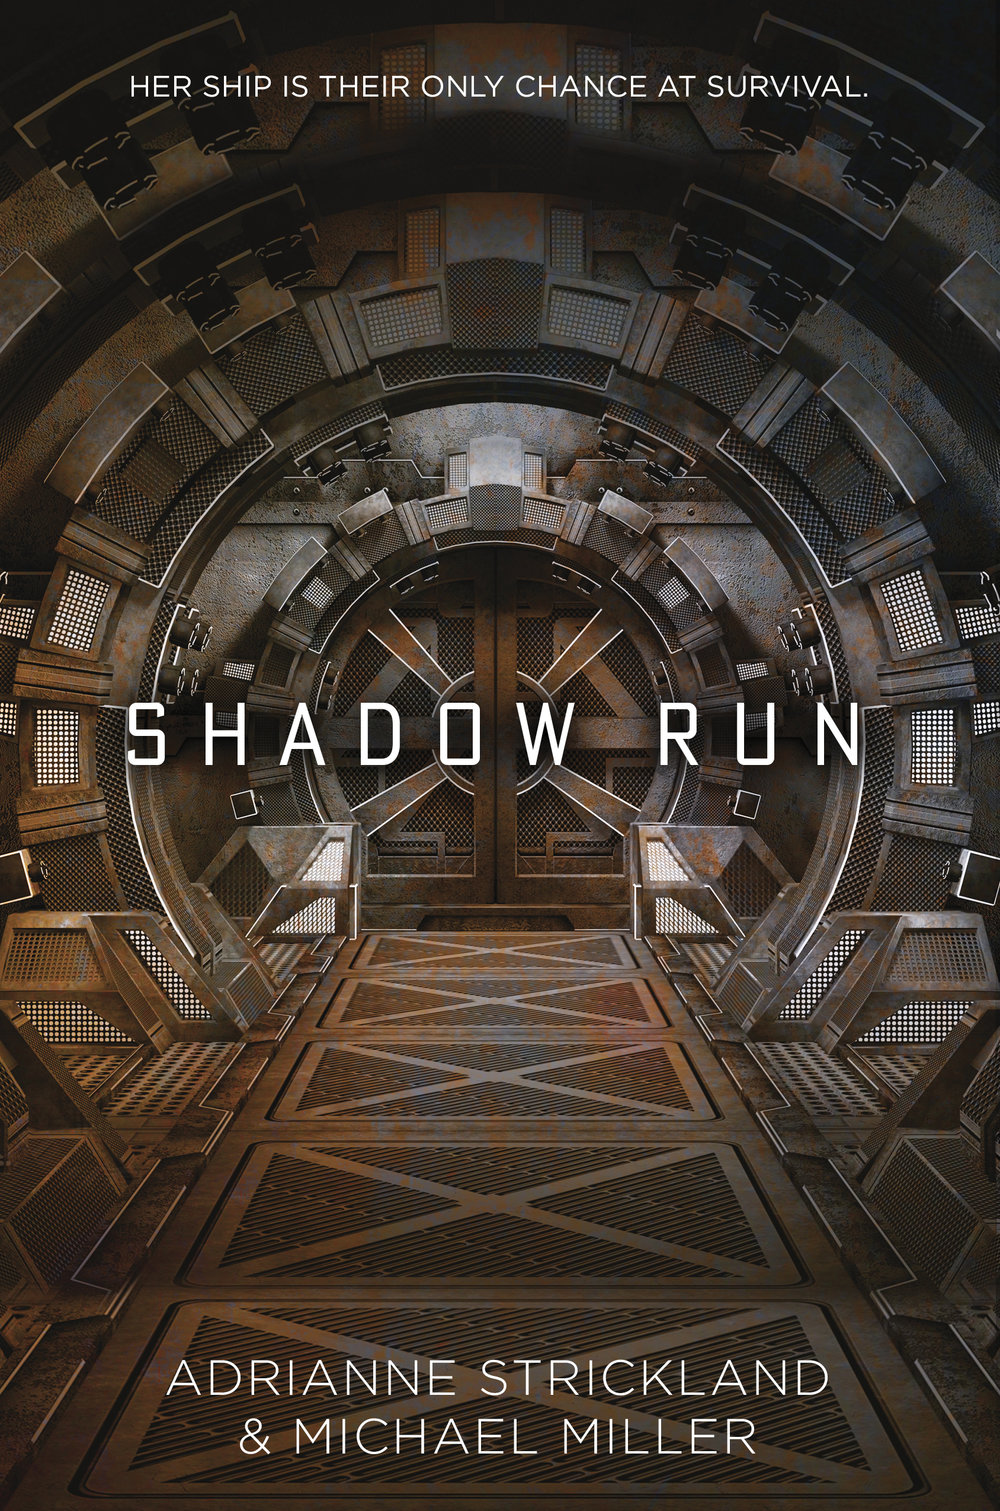 SHADOW RUN by Adrianne Strickland & Michael Miller